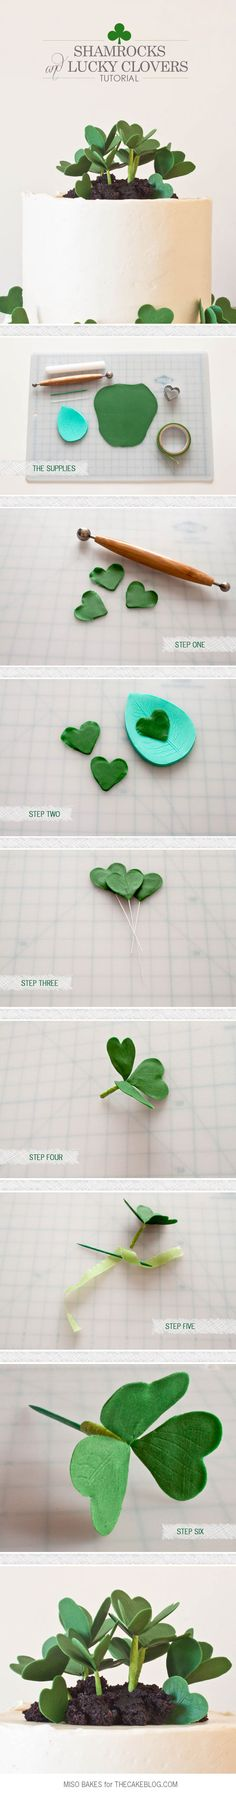 DIY Shamrock Cake | Tutorial by Miso Bakes for TheCakeBlog.com